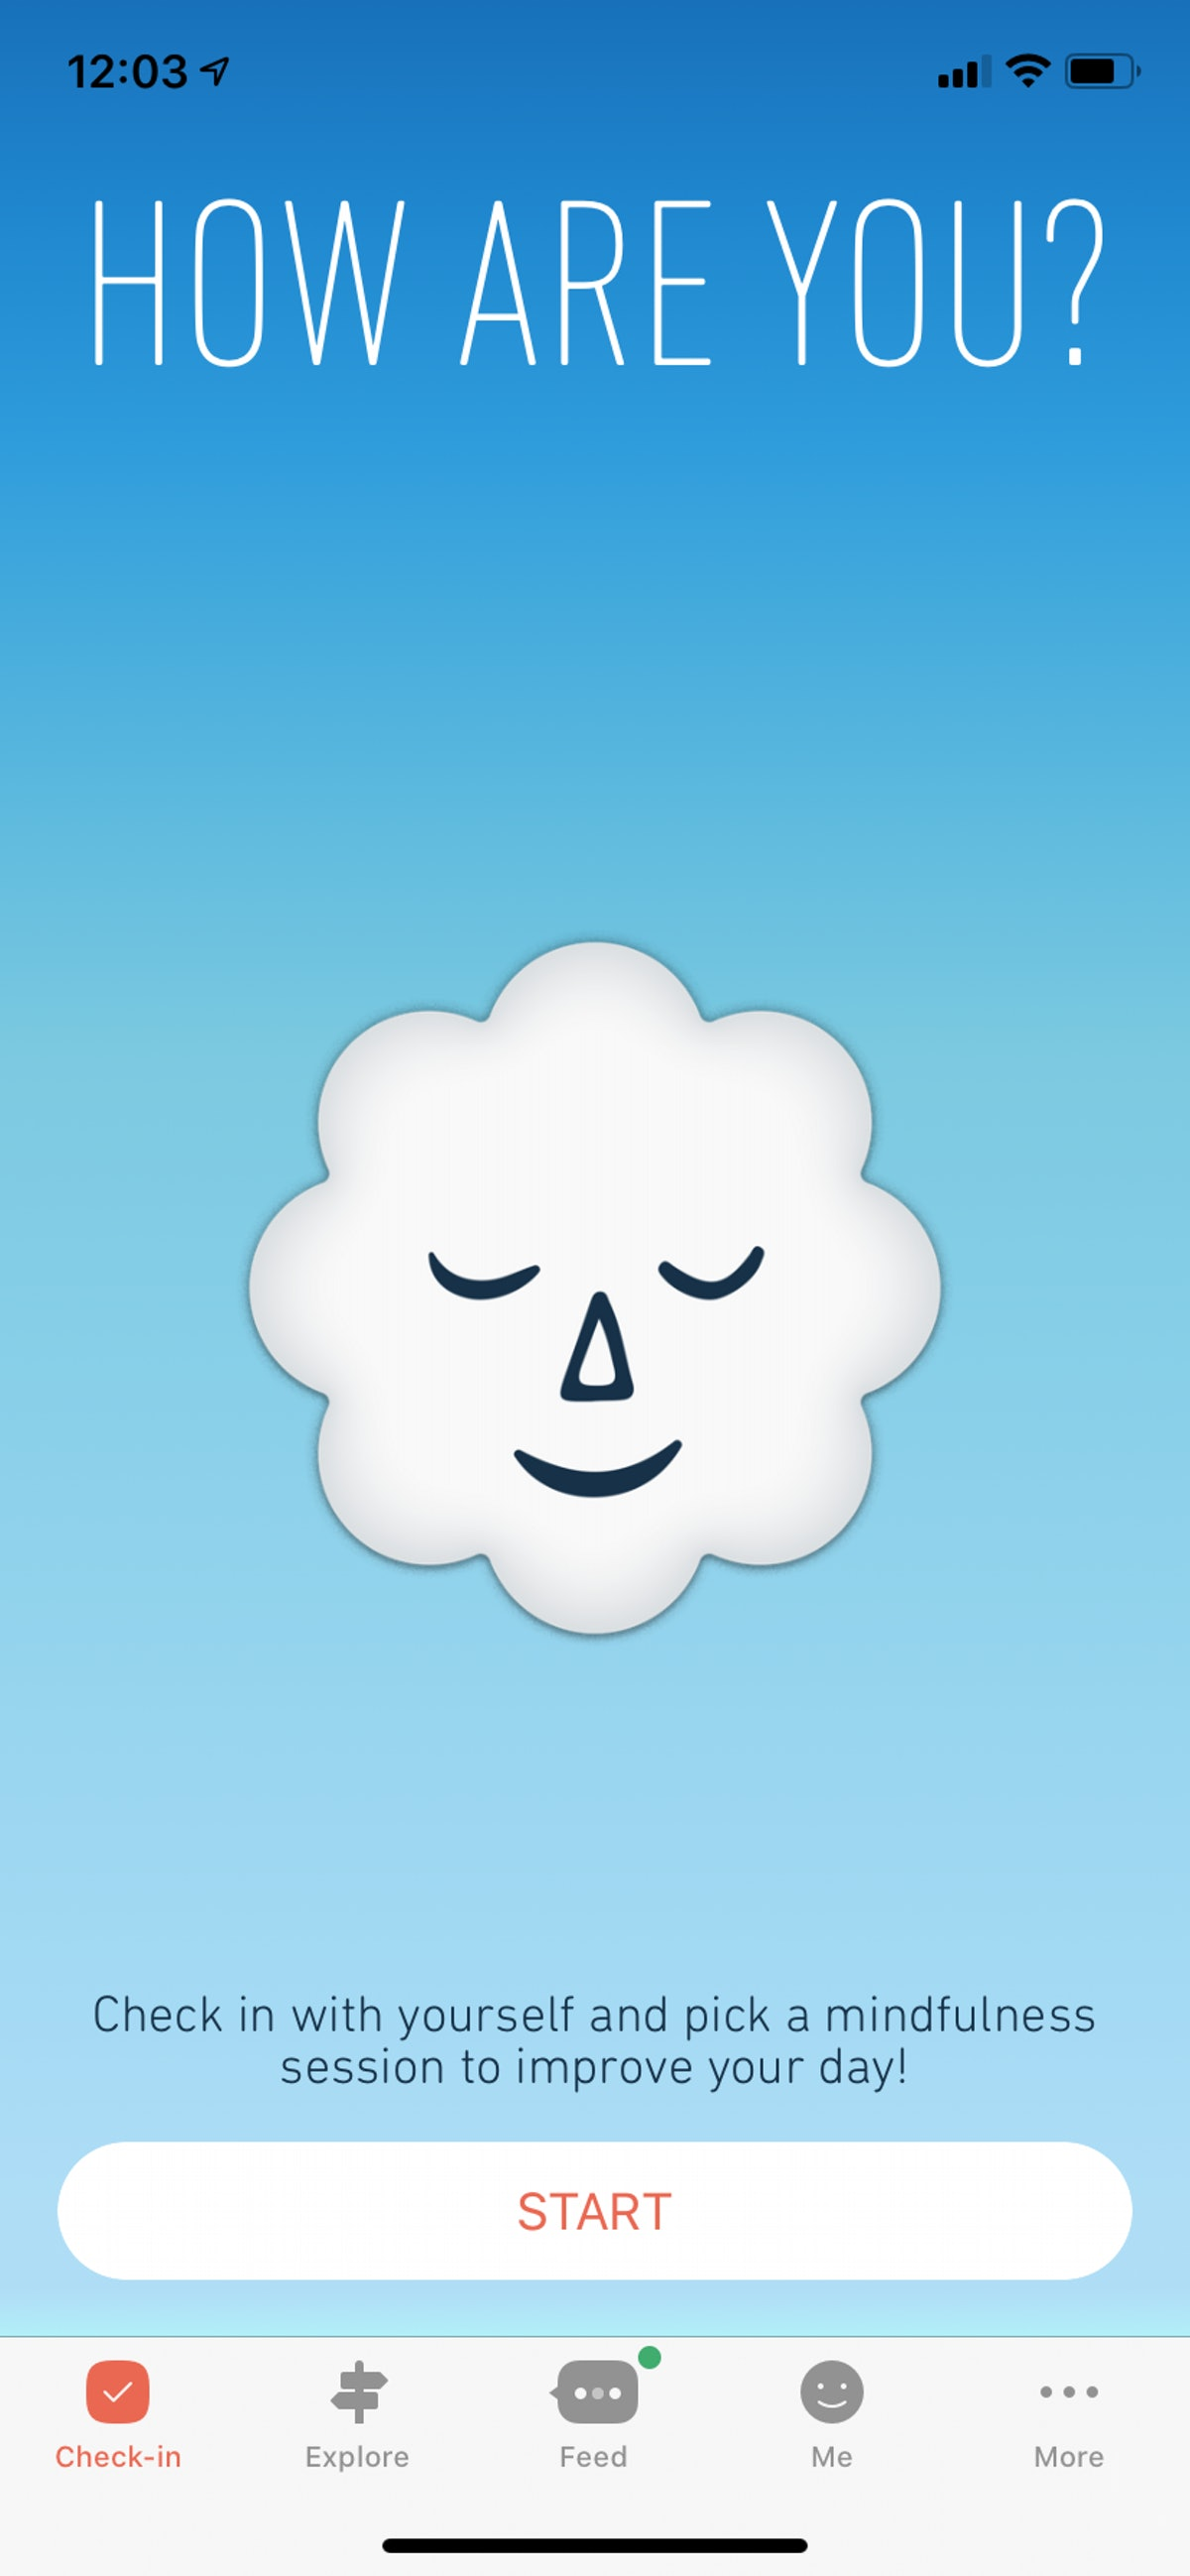 The Stop, Breathe & Think app asks you to check-in with your emotional wellbeing before giving you personalized meditation practices.